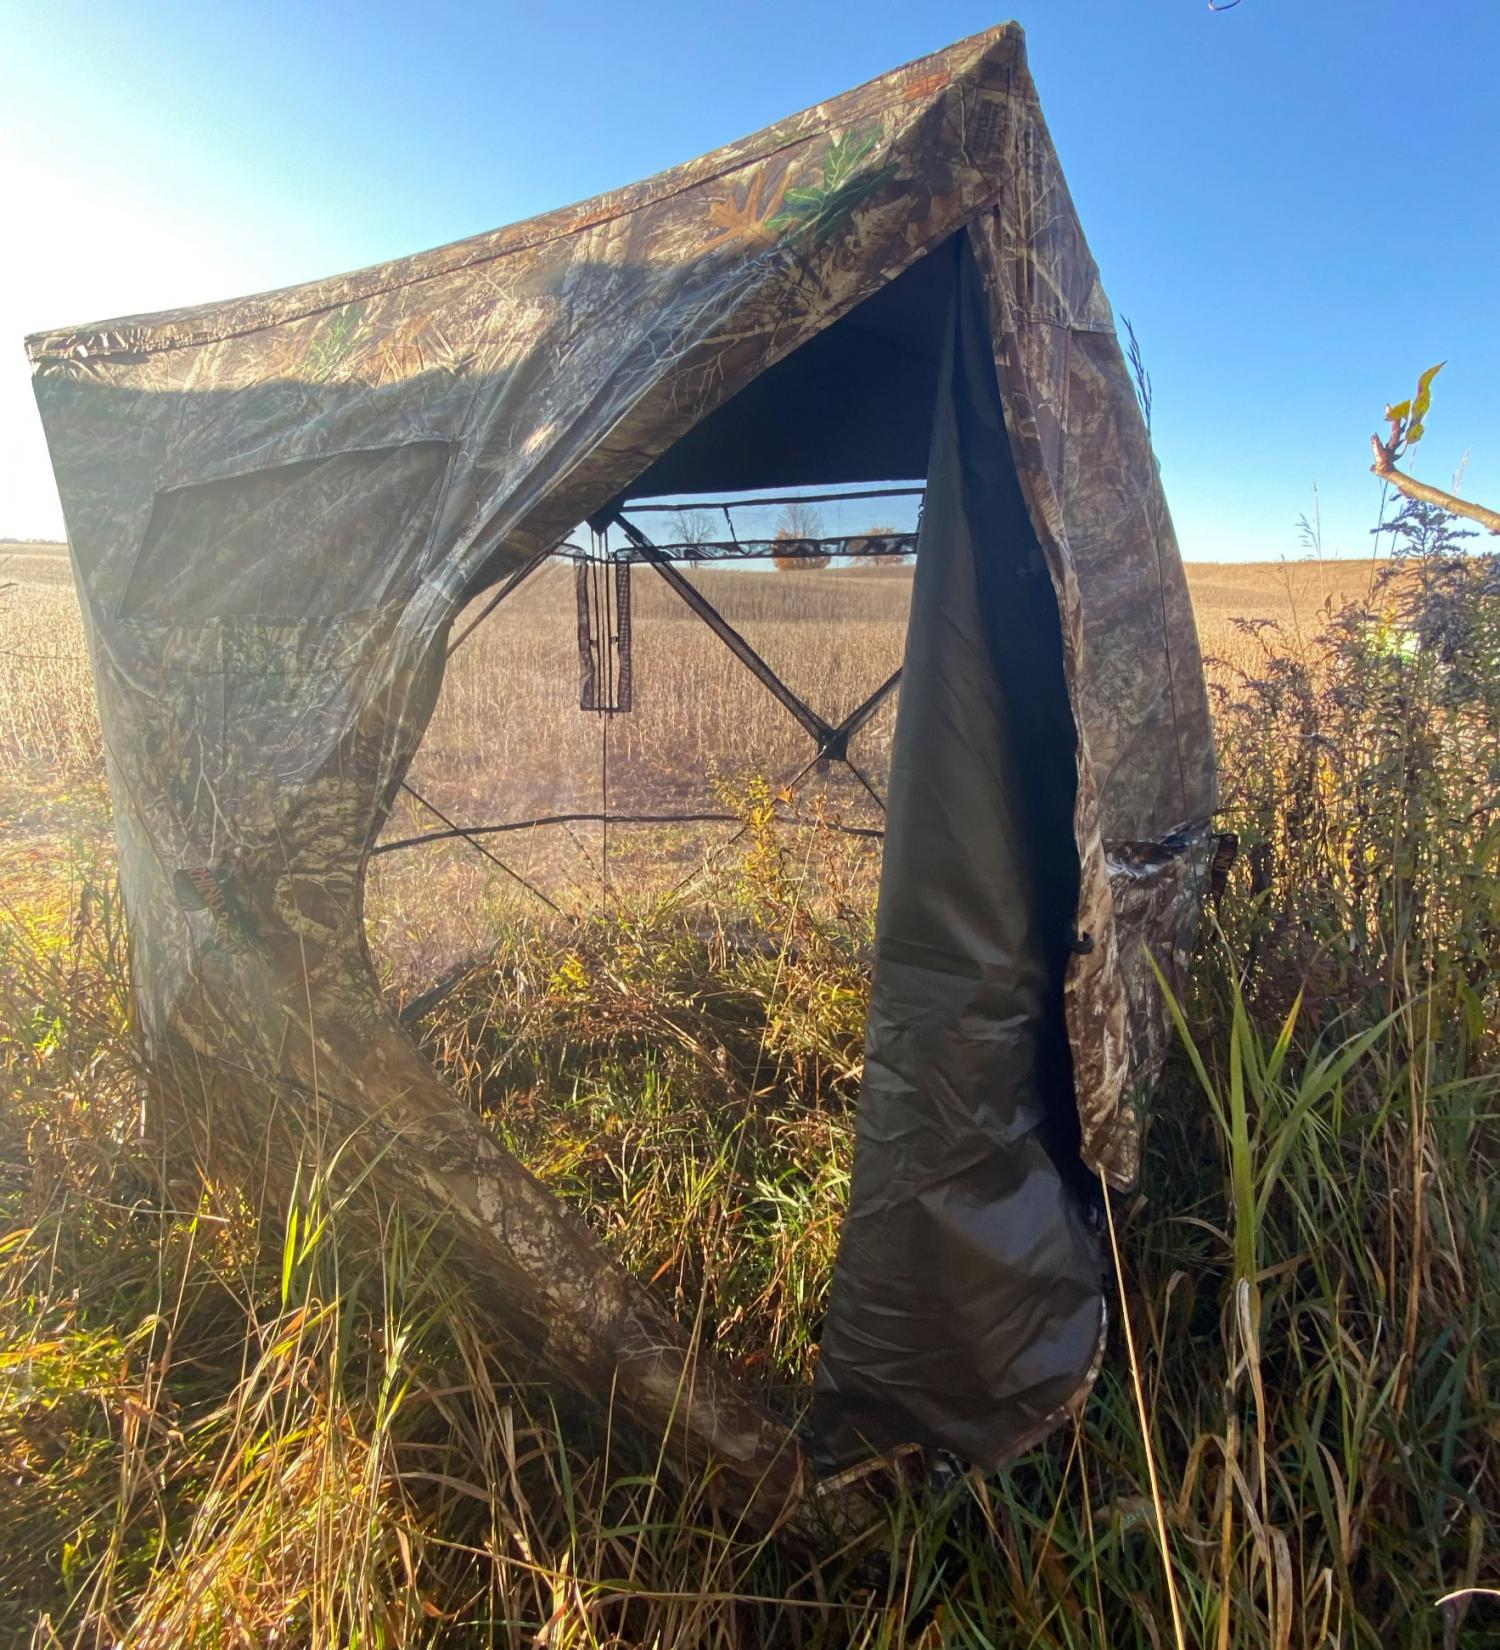 Rhino 180 See Through Hunting Blind - One-way Transparent hunting tent